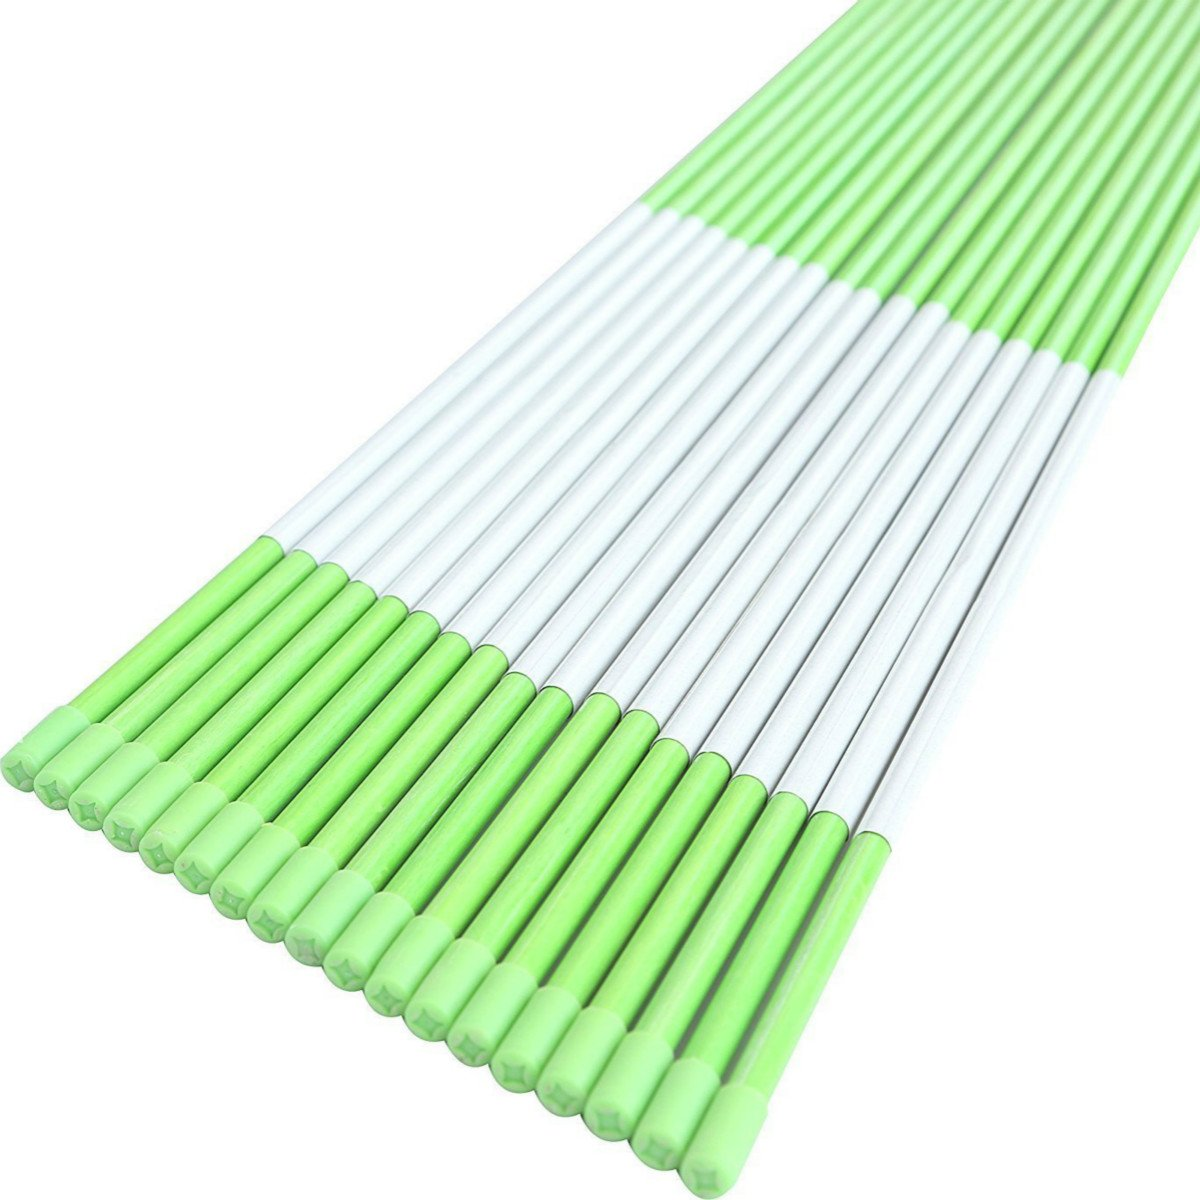 Fibermarker 60Inch Reflective Driveway Markers 5/16Inch Green Solid Driveway Poles for Easy Visibility at Night (100) by FiberMarker (Image #6)